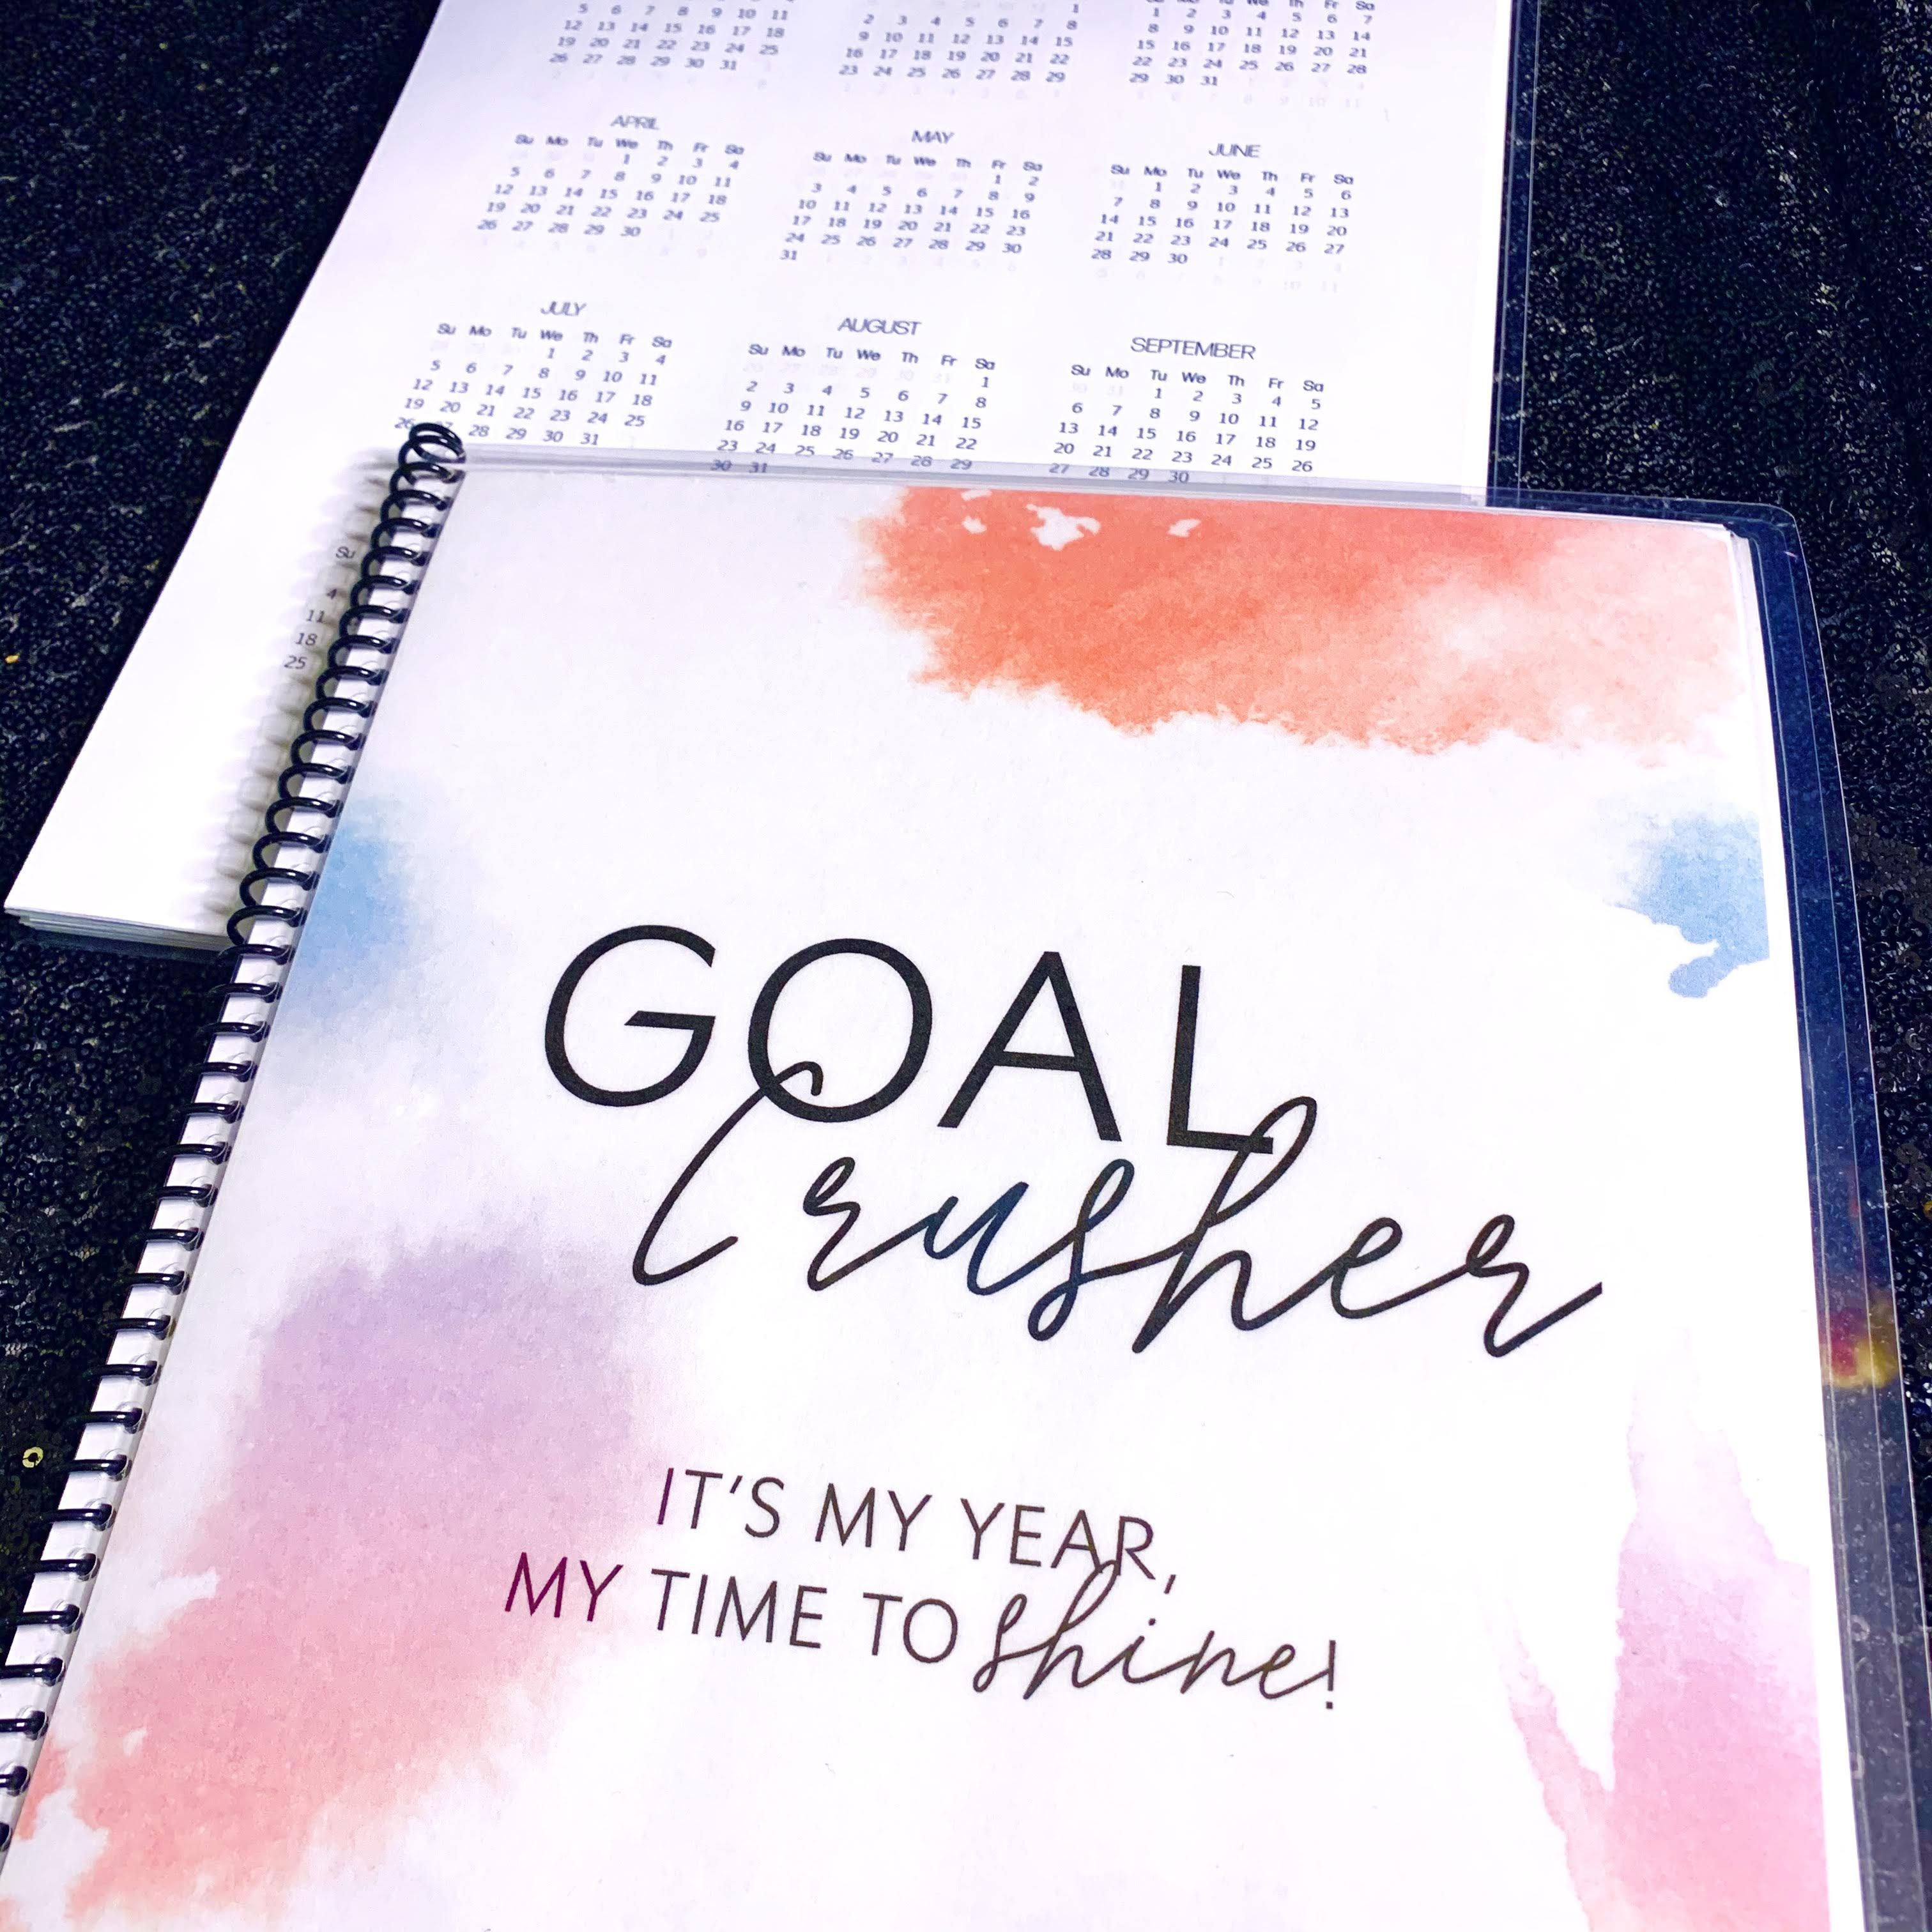 The Goal Crusher Planner Can Help You Set Goals And Make